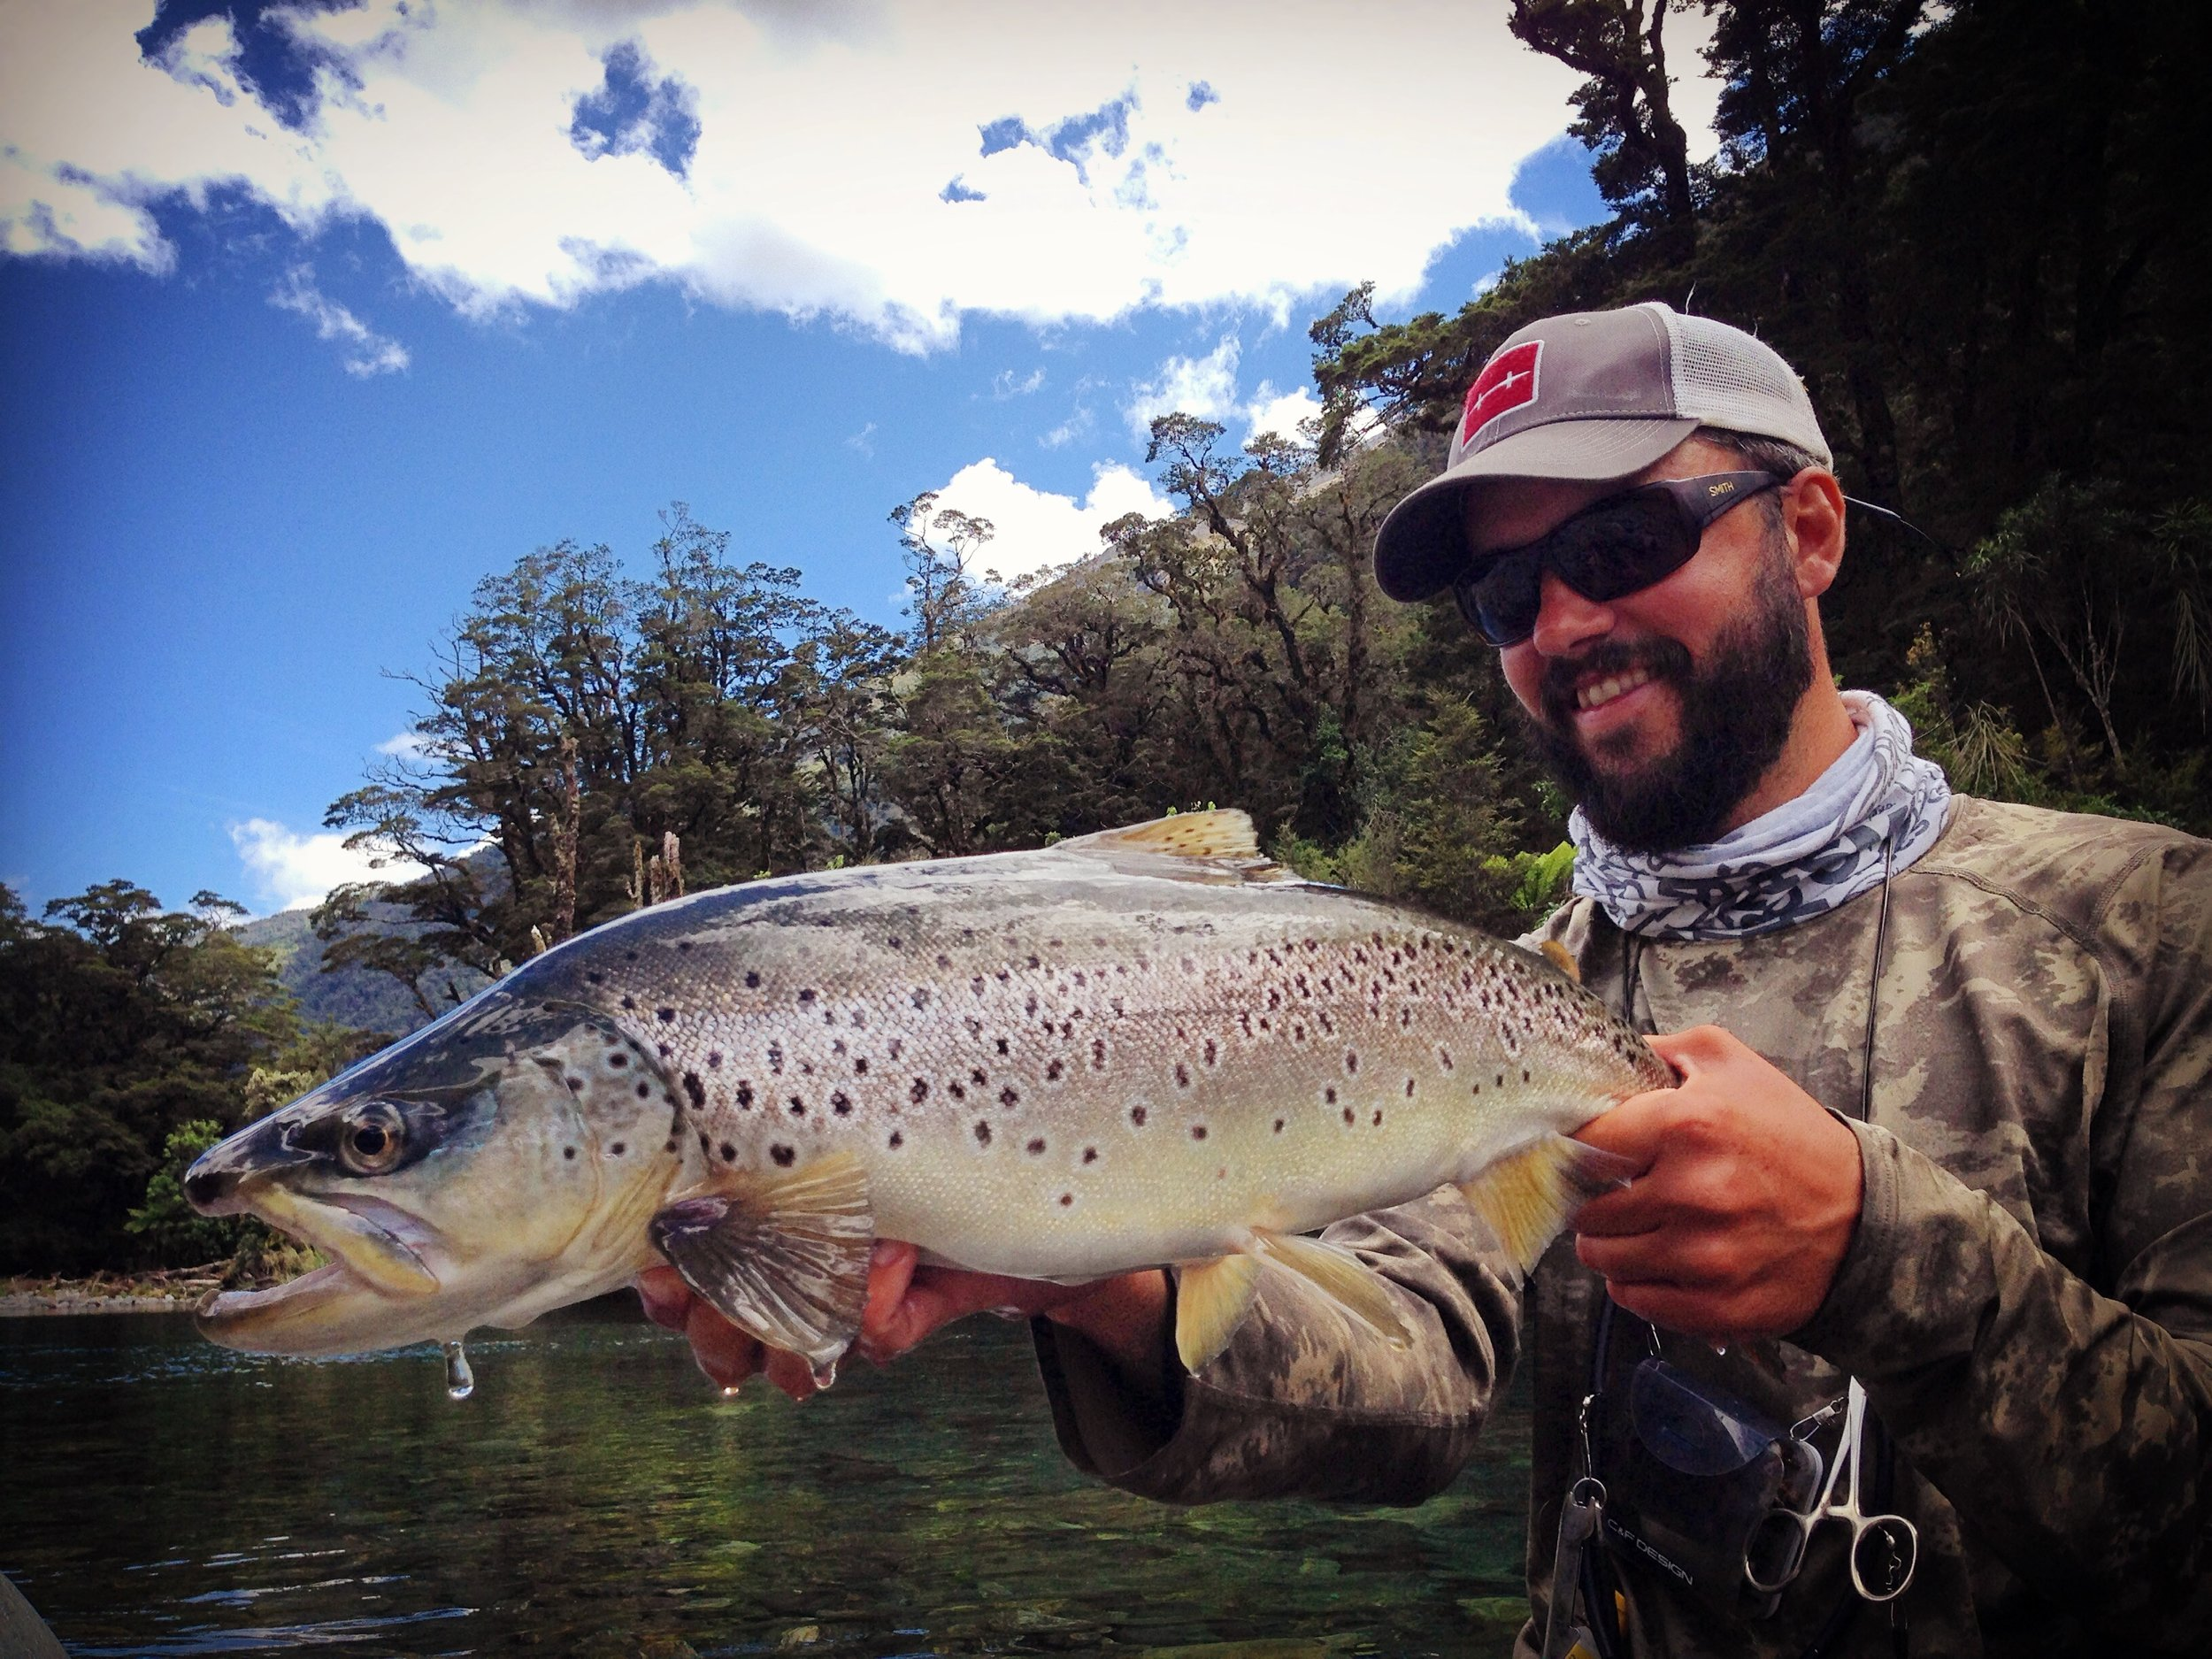 New Zealand fly fishing guide Jeff Forsee with a big backcountry brown trout.